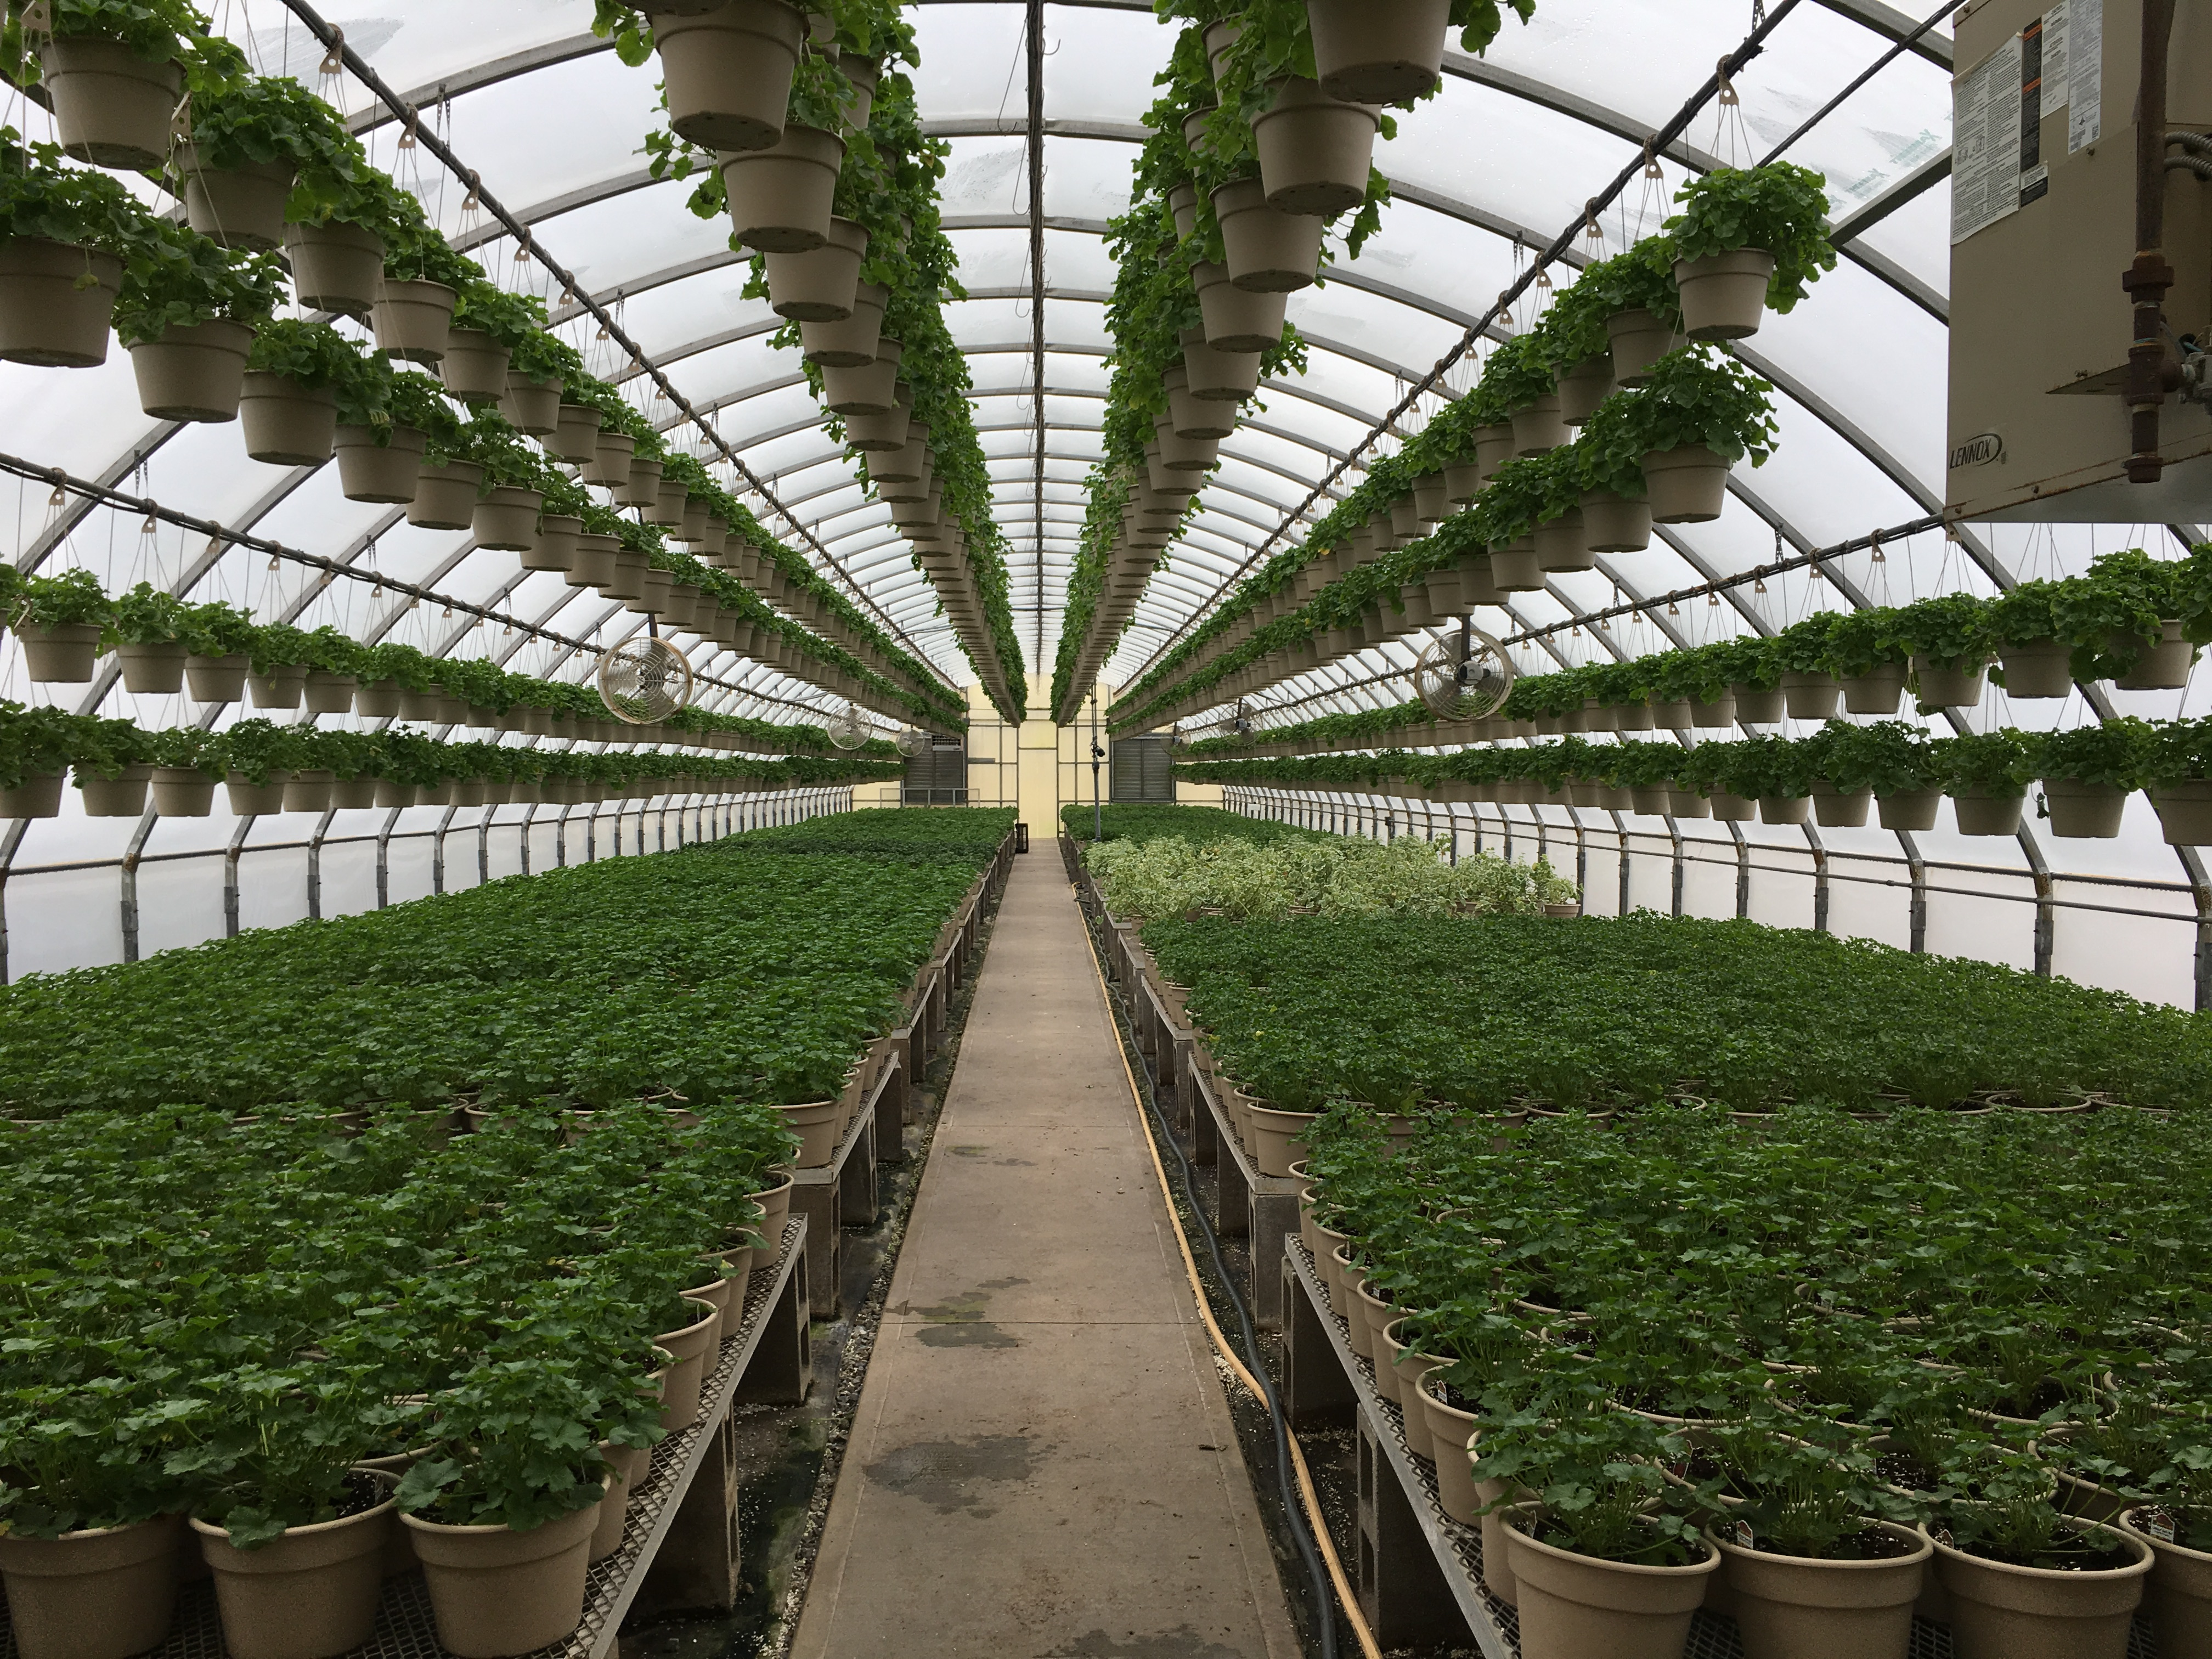 Greenhouse gurus design solutions for your greenhouse needs - Strader s garden centers columbus oh ...